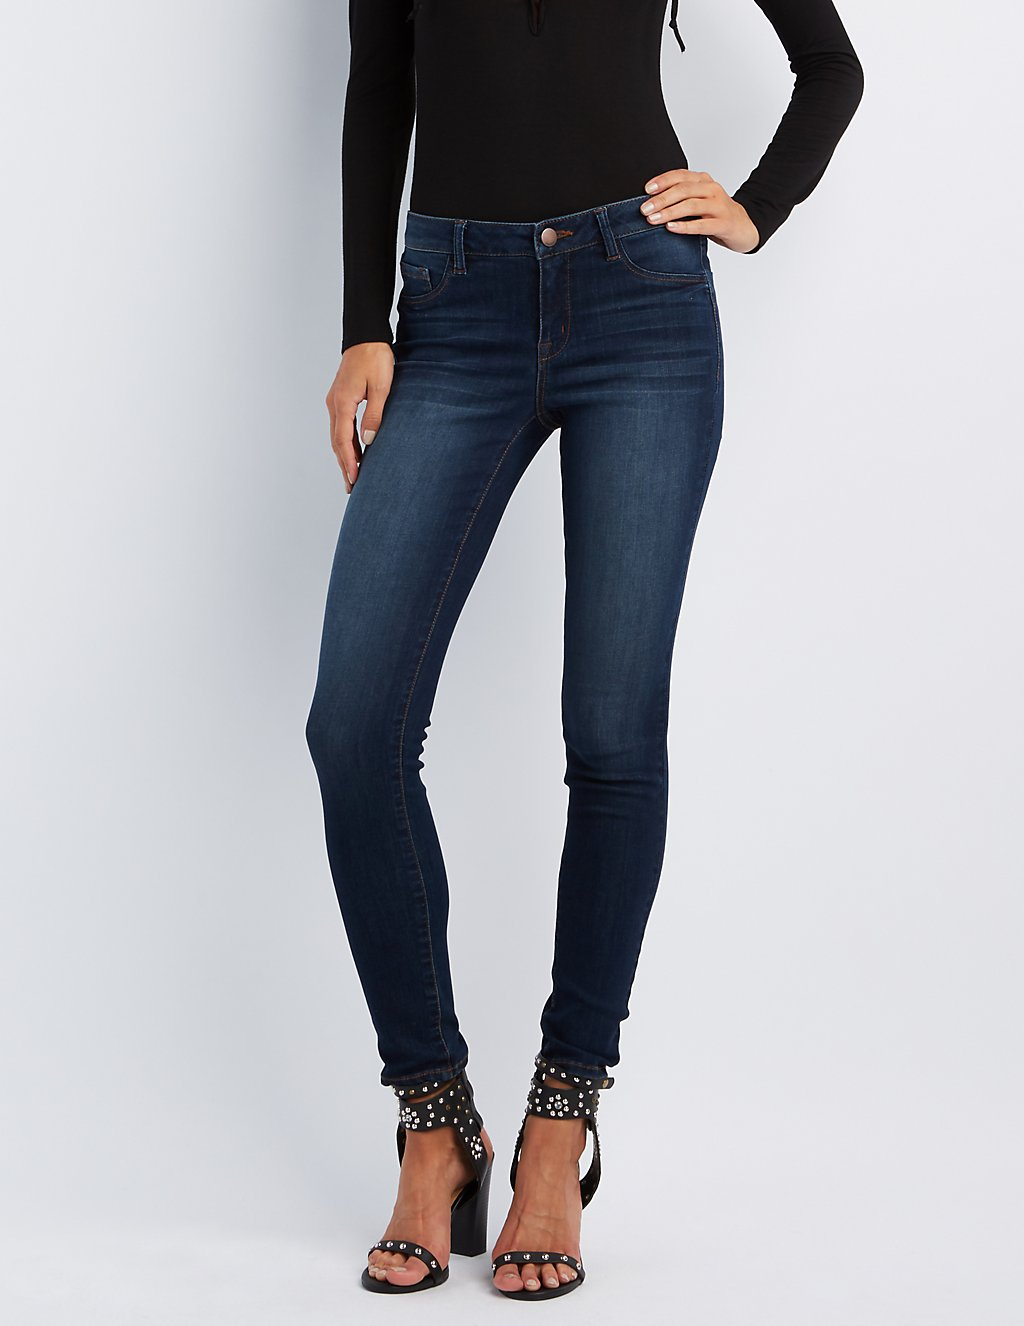 skin tight legging jeans